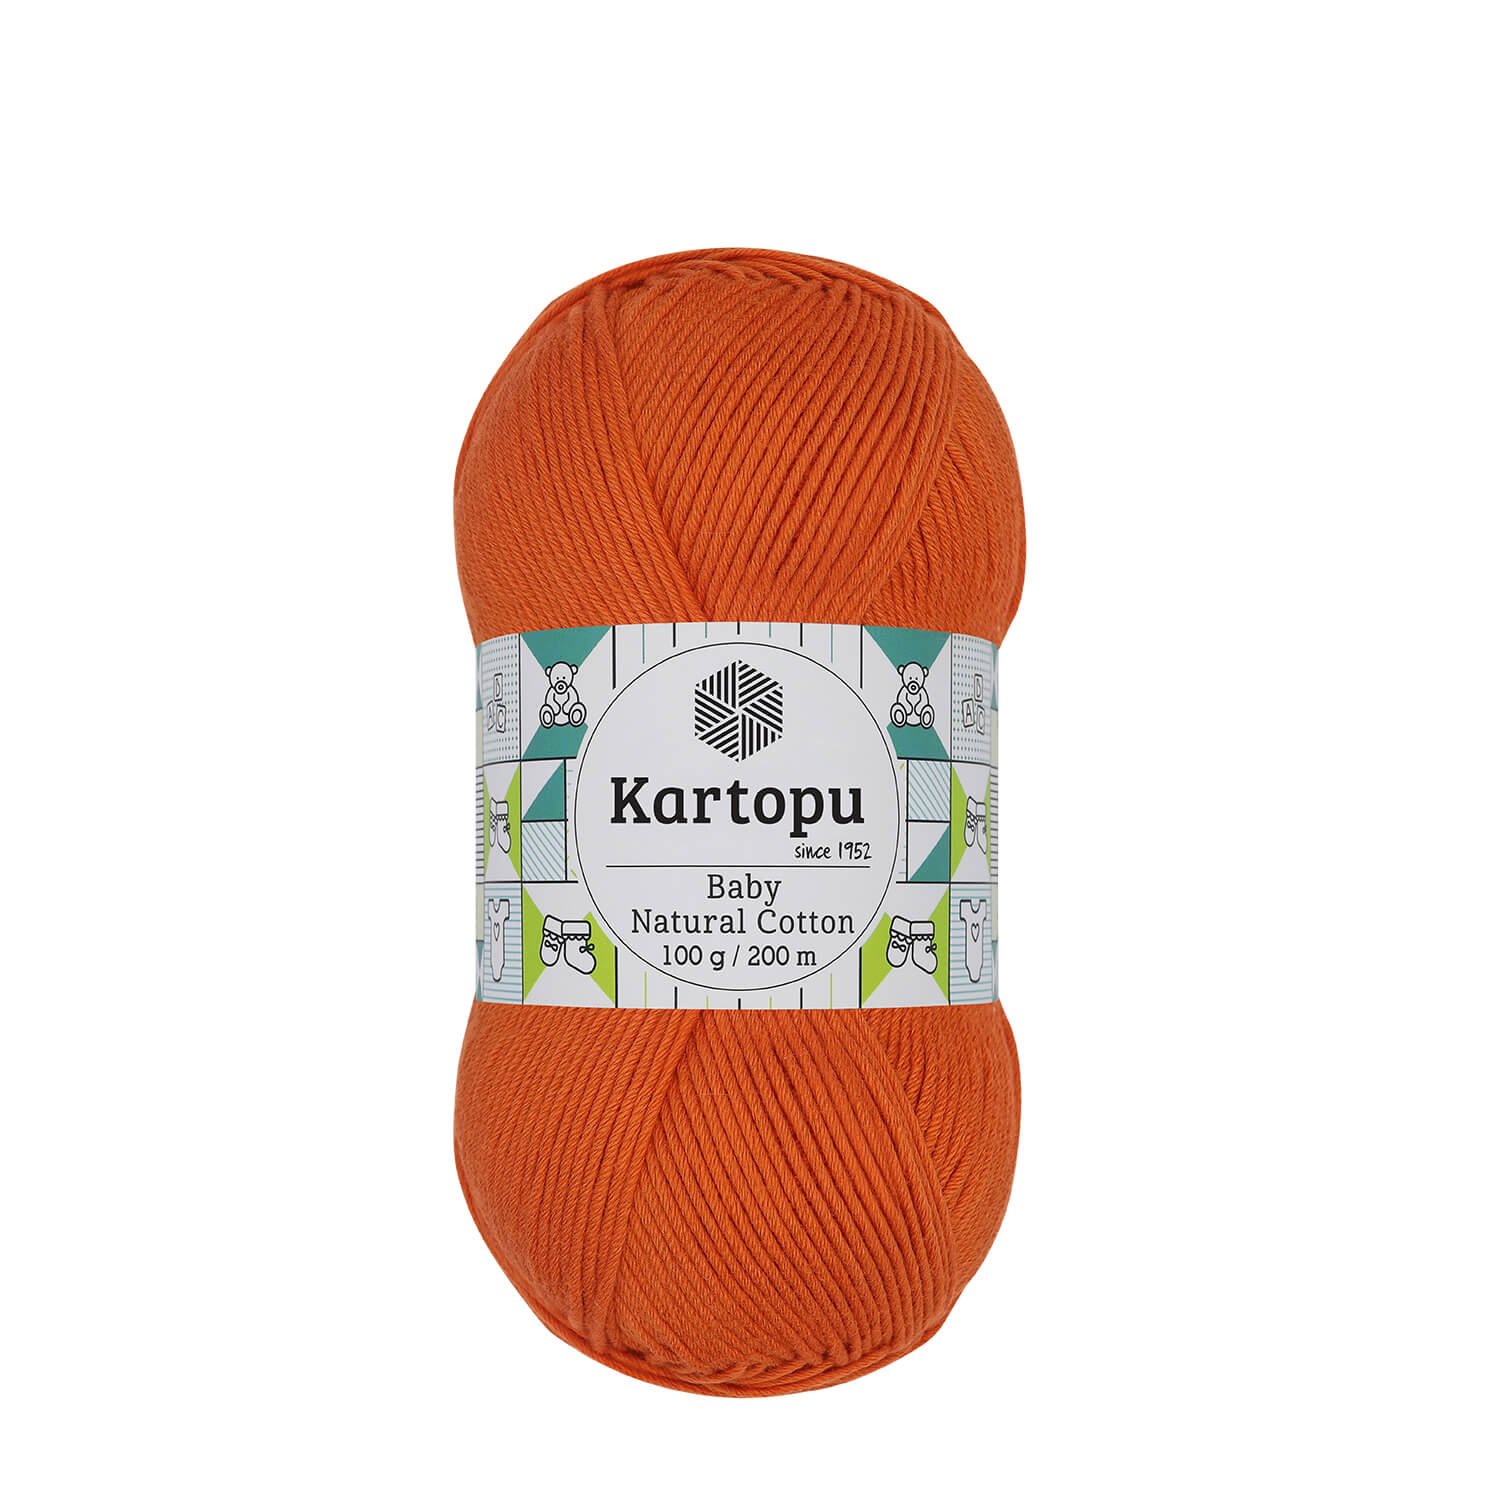 Baby Natural Cotton K202